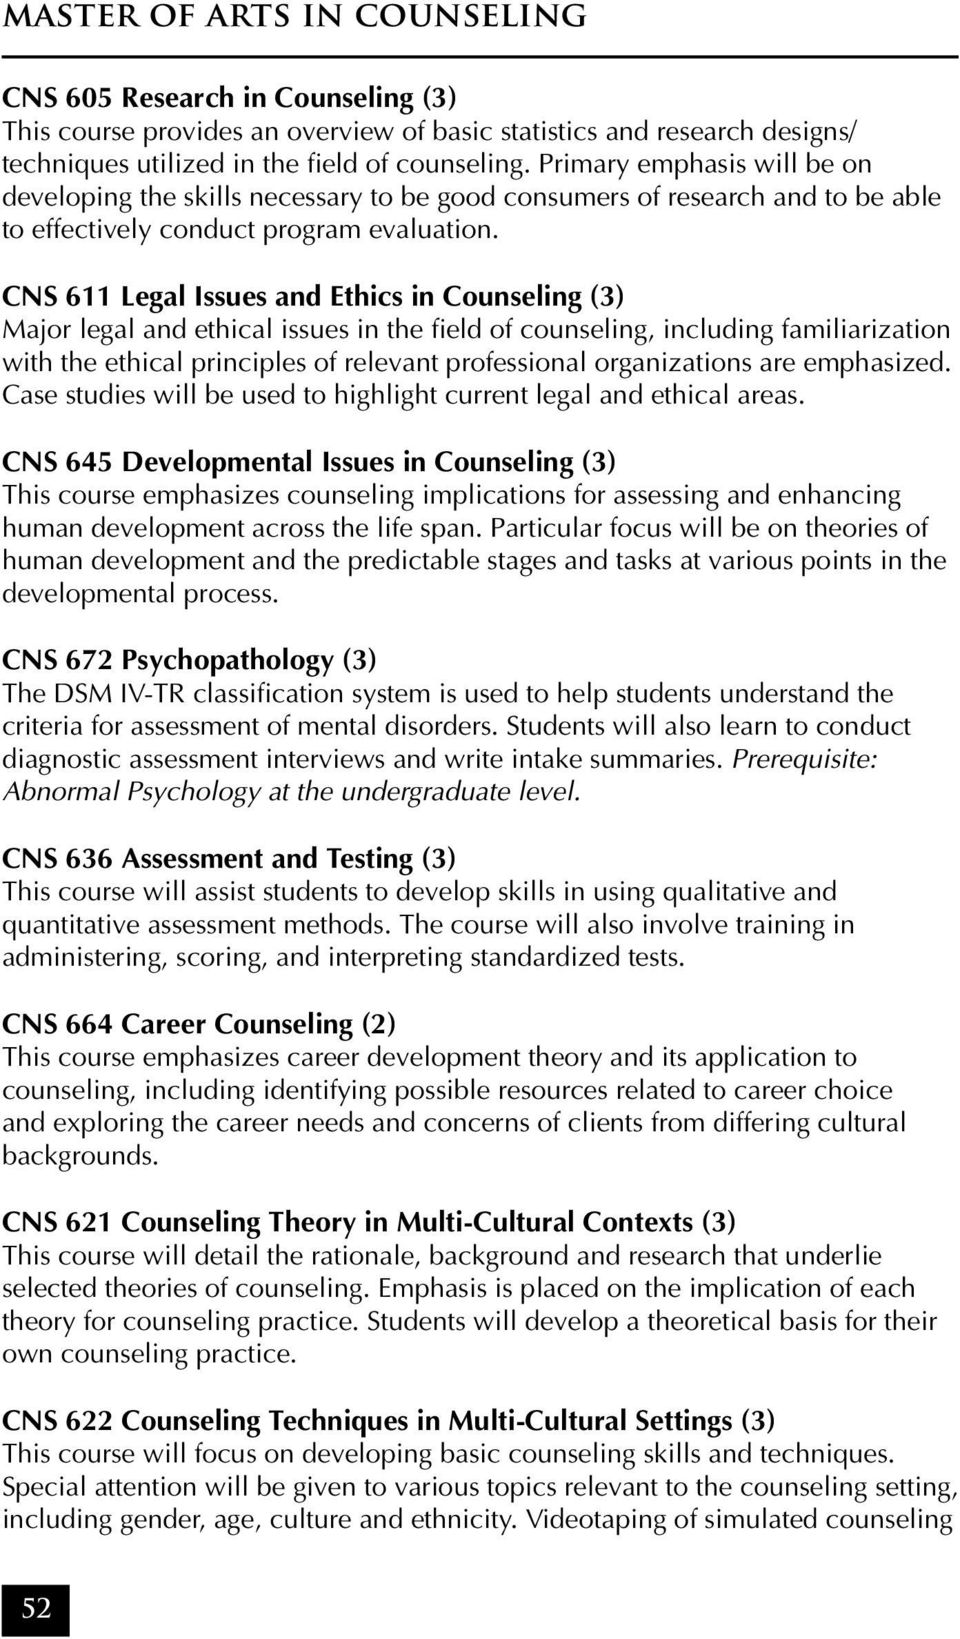 CNS 611 Legal Issues and Ethics in Counseling (3) Major legal and ethical issues in the field of counseling, including familiarization with the ethical principles of relevant professional